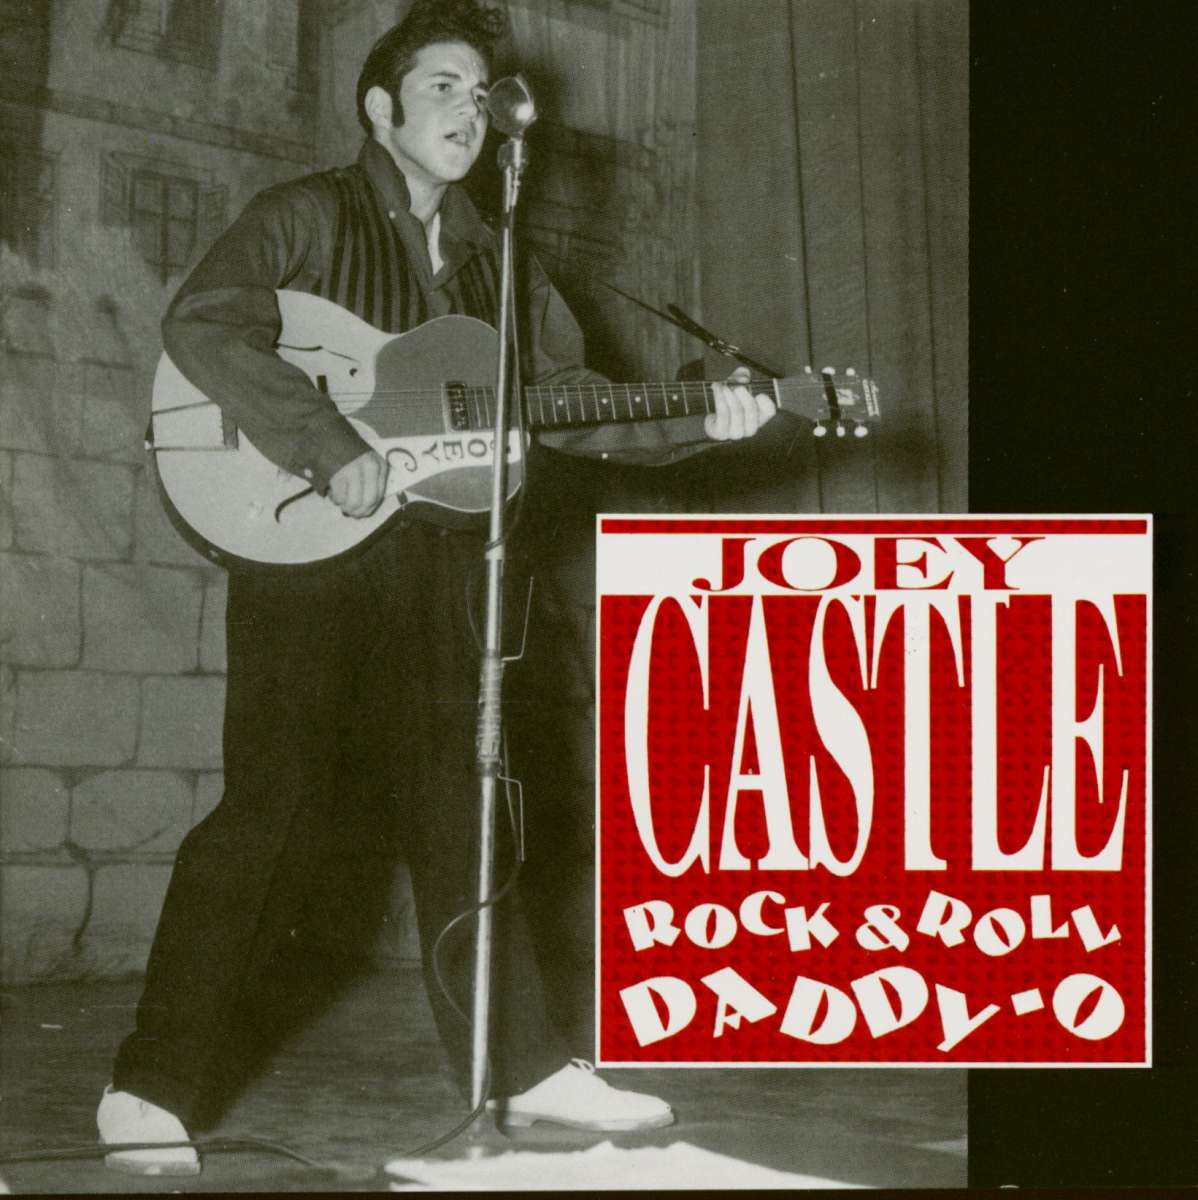 Joey Castle  Rock'n'roll Daddy-O